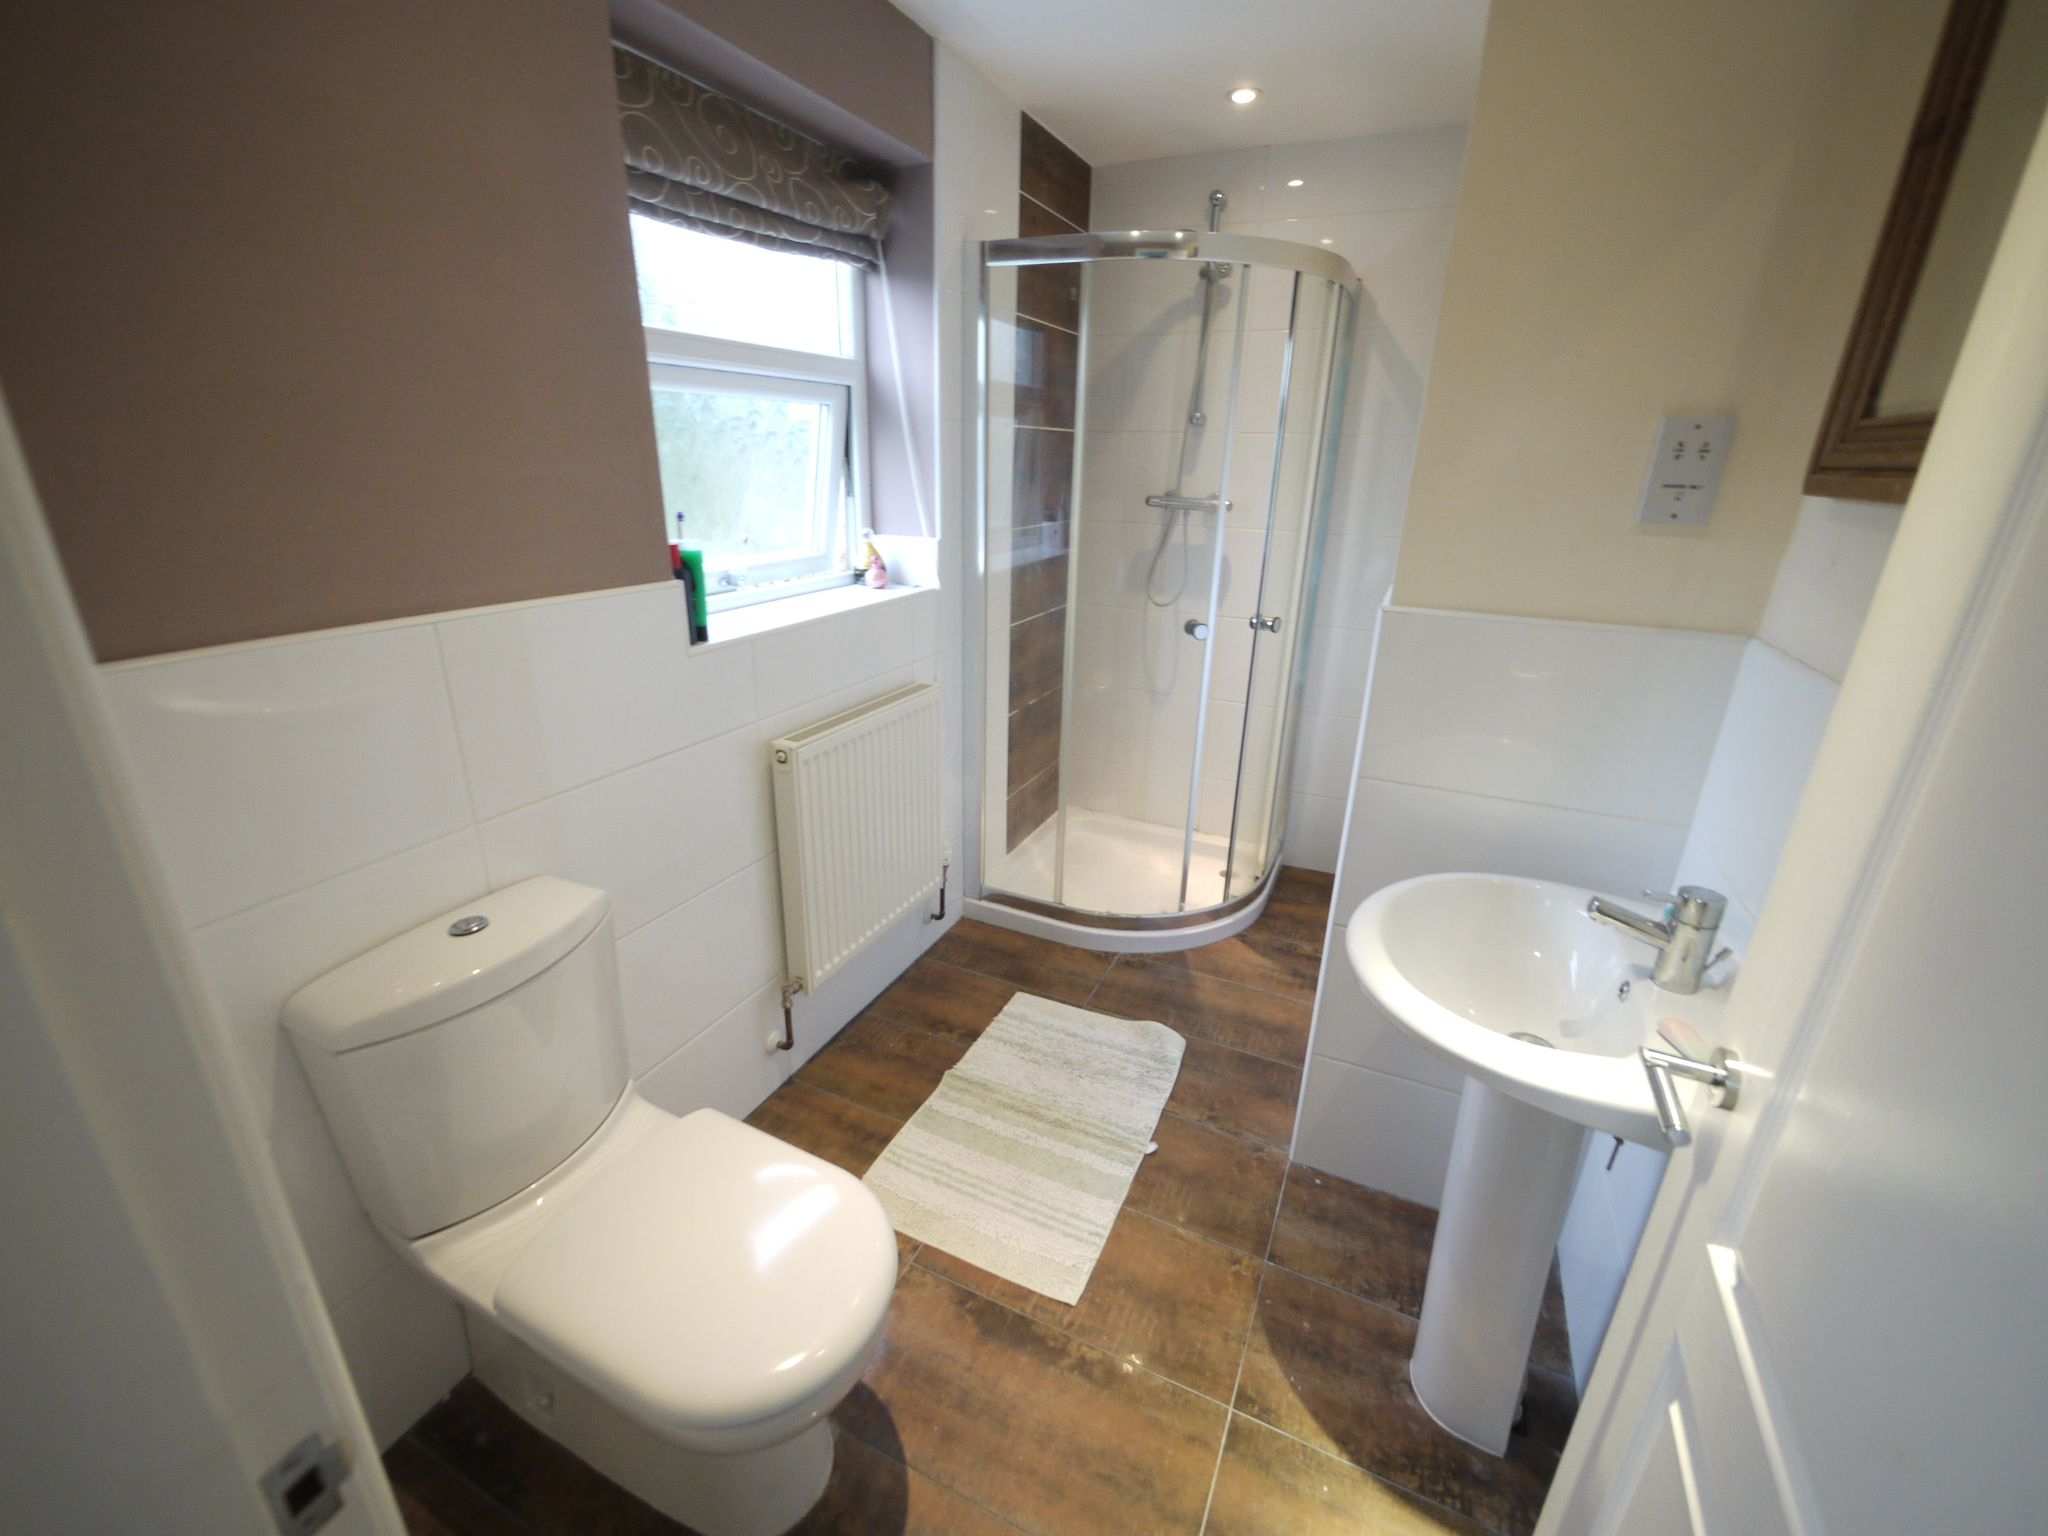 6 bedroom detached house SSTC in Halifax - bed 2 ensuite.